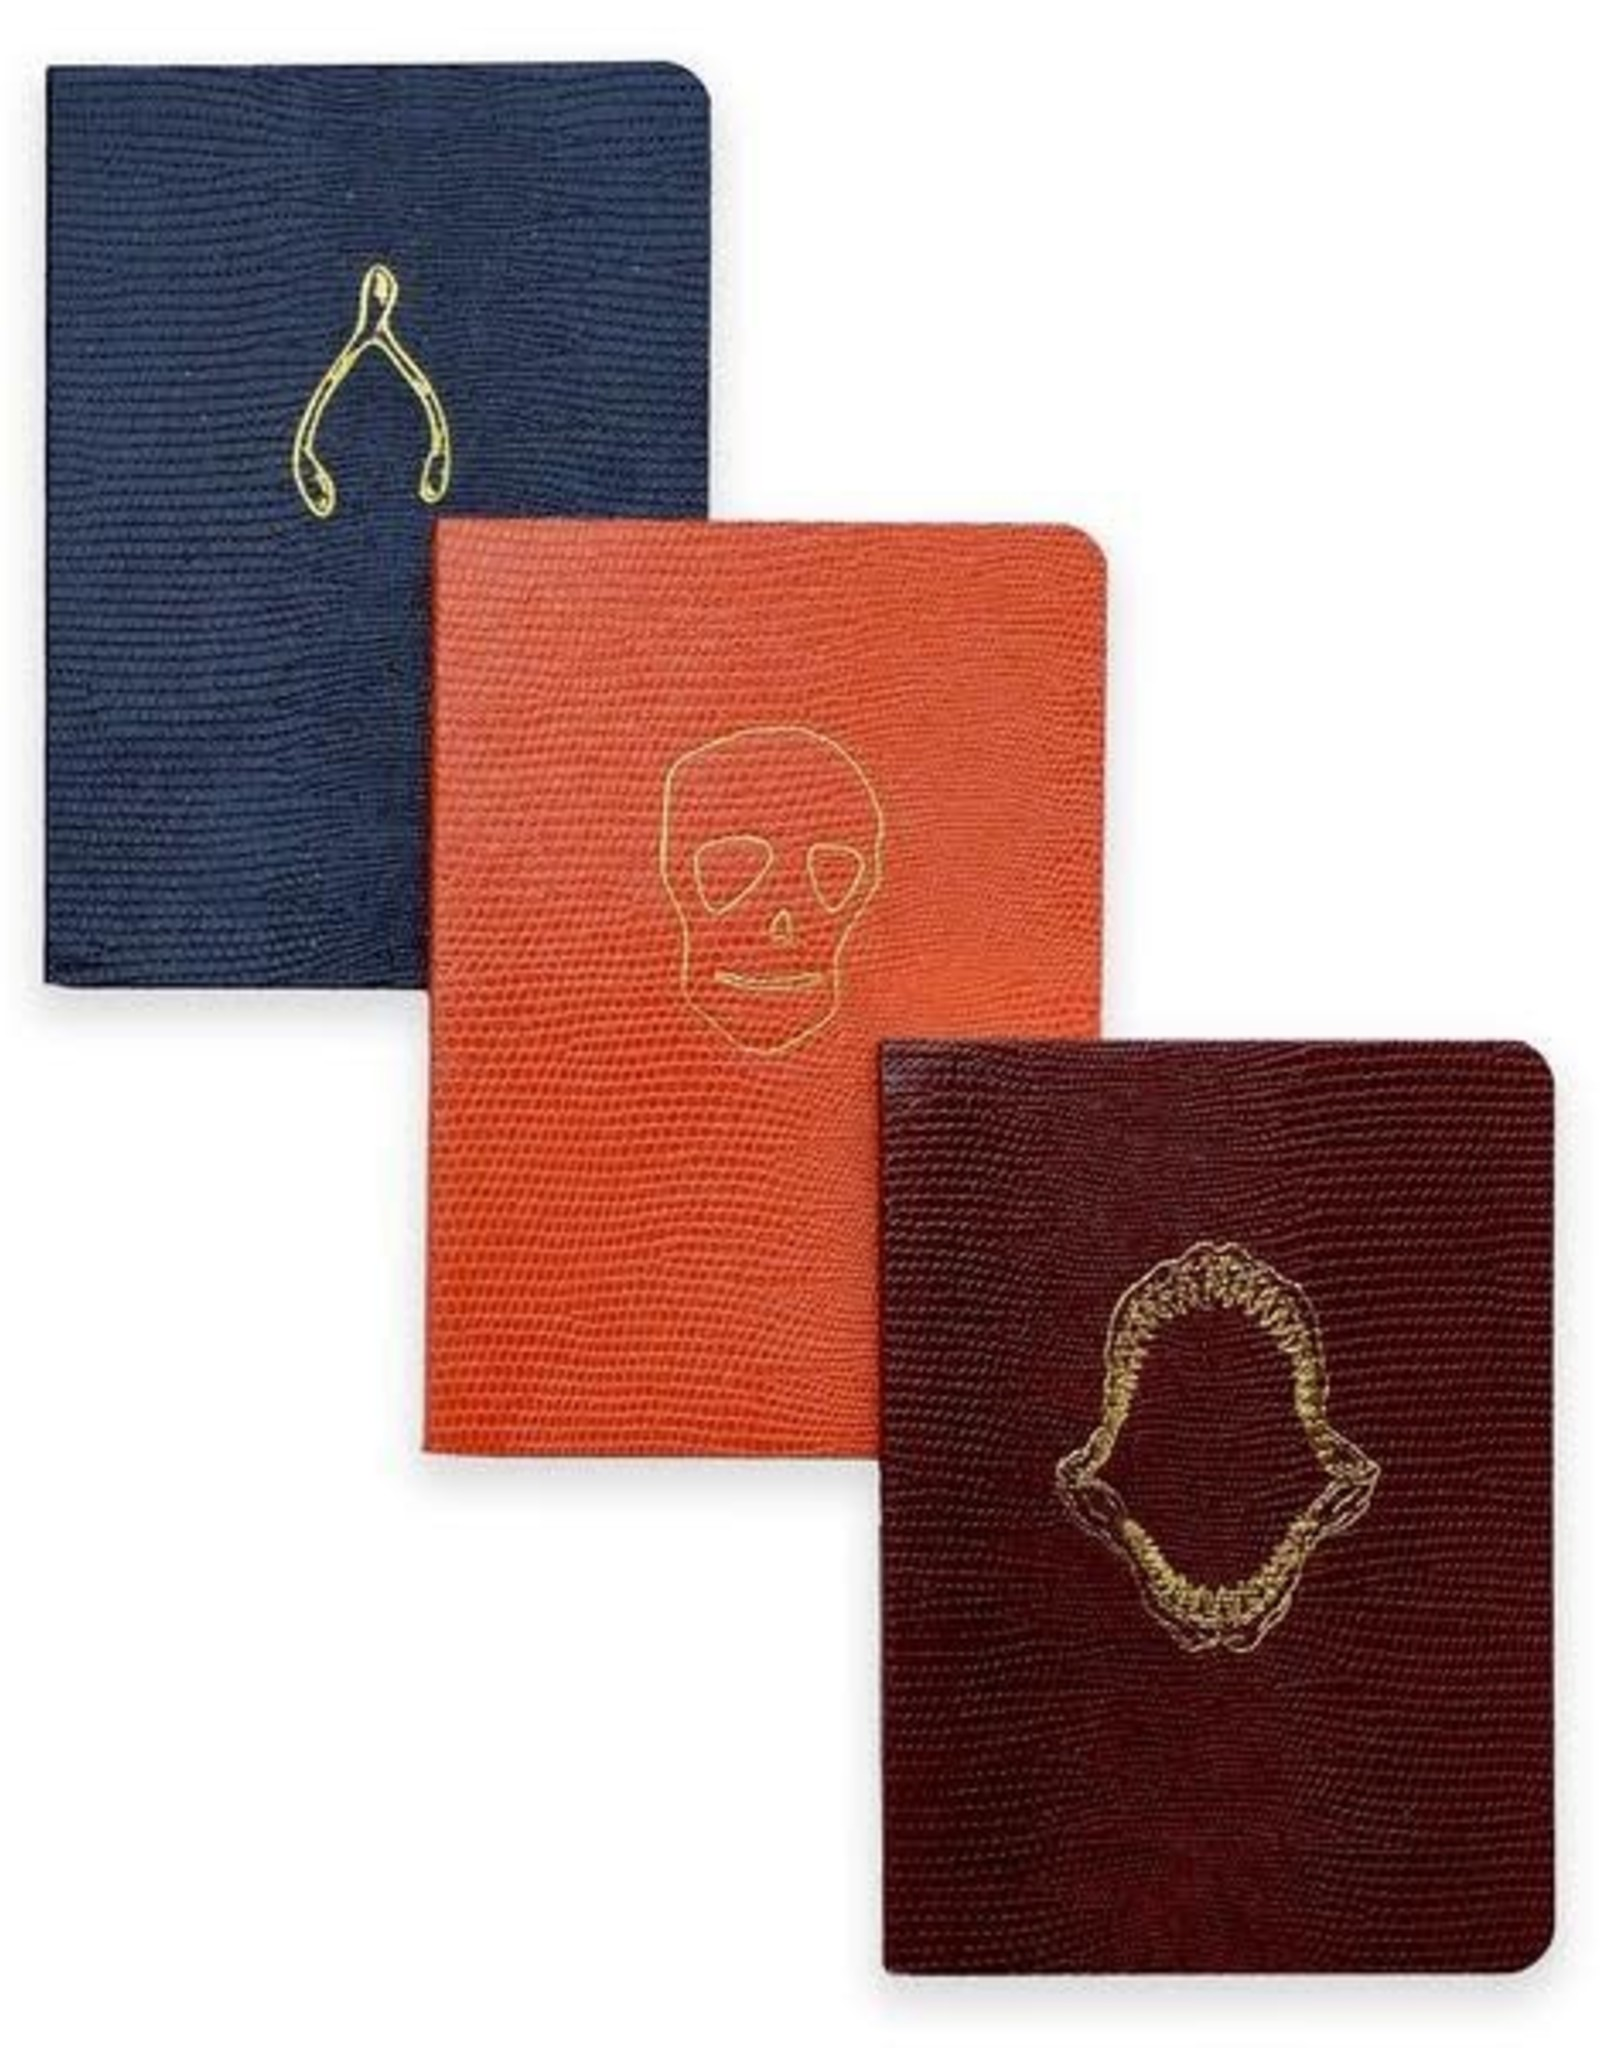 Sloane Stationery ltd Pocket notebook softcover Wishbone symbol Navy